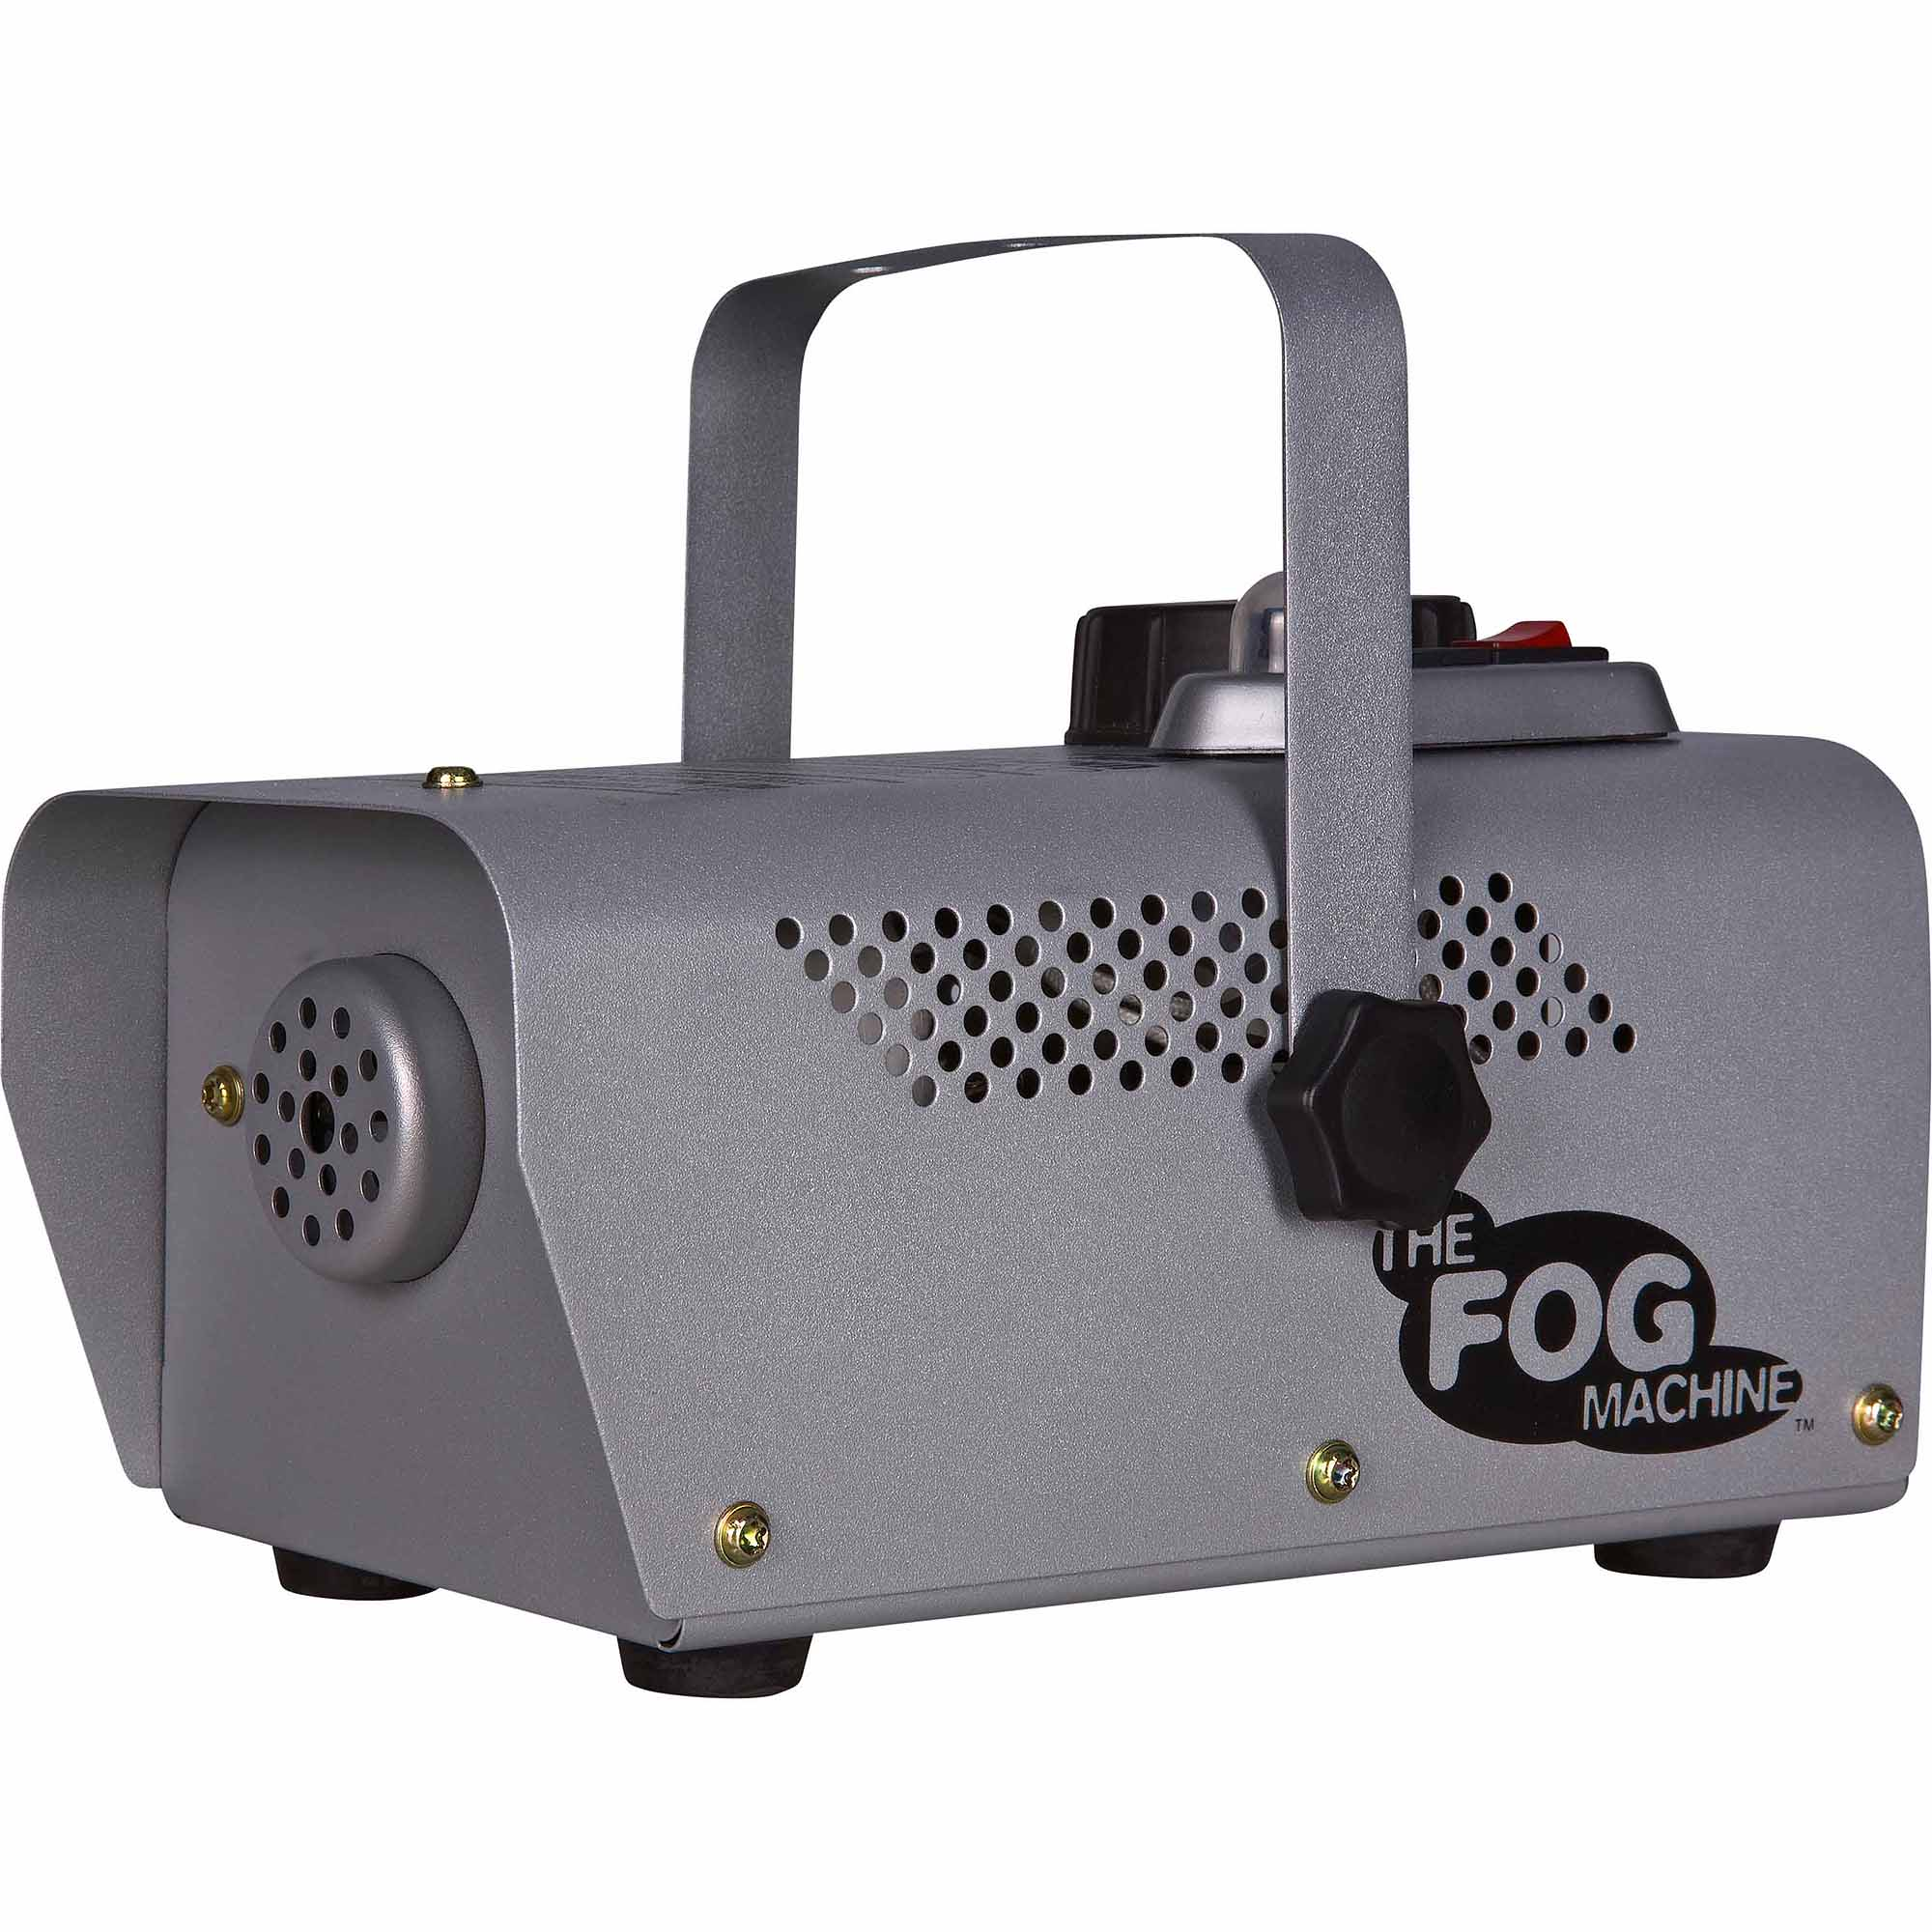 15e3e9ae 5153 48d2 b6a4 a360477a7908_1.0beda09dc2650543113b36eb3789b92d the fog machine with remote 400w by gemmy industries walmart com fog machine remote wiring diagram at mifinder.co